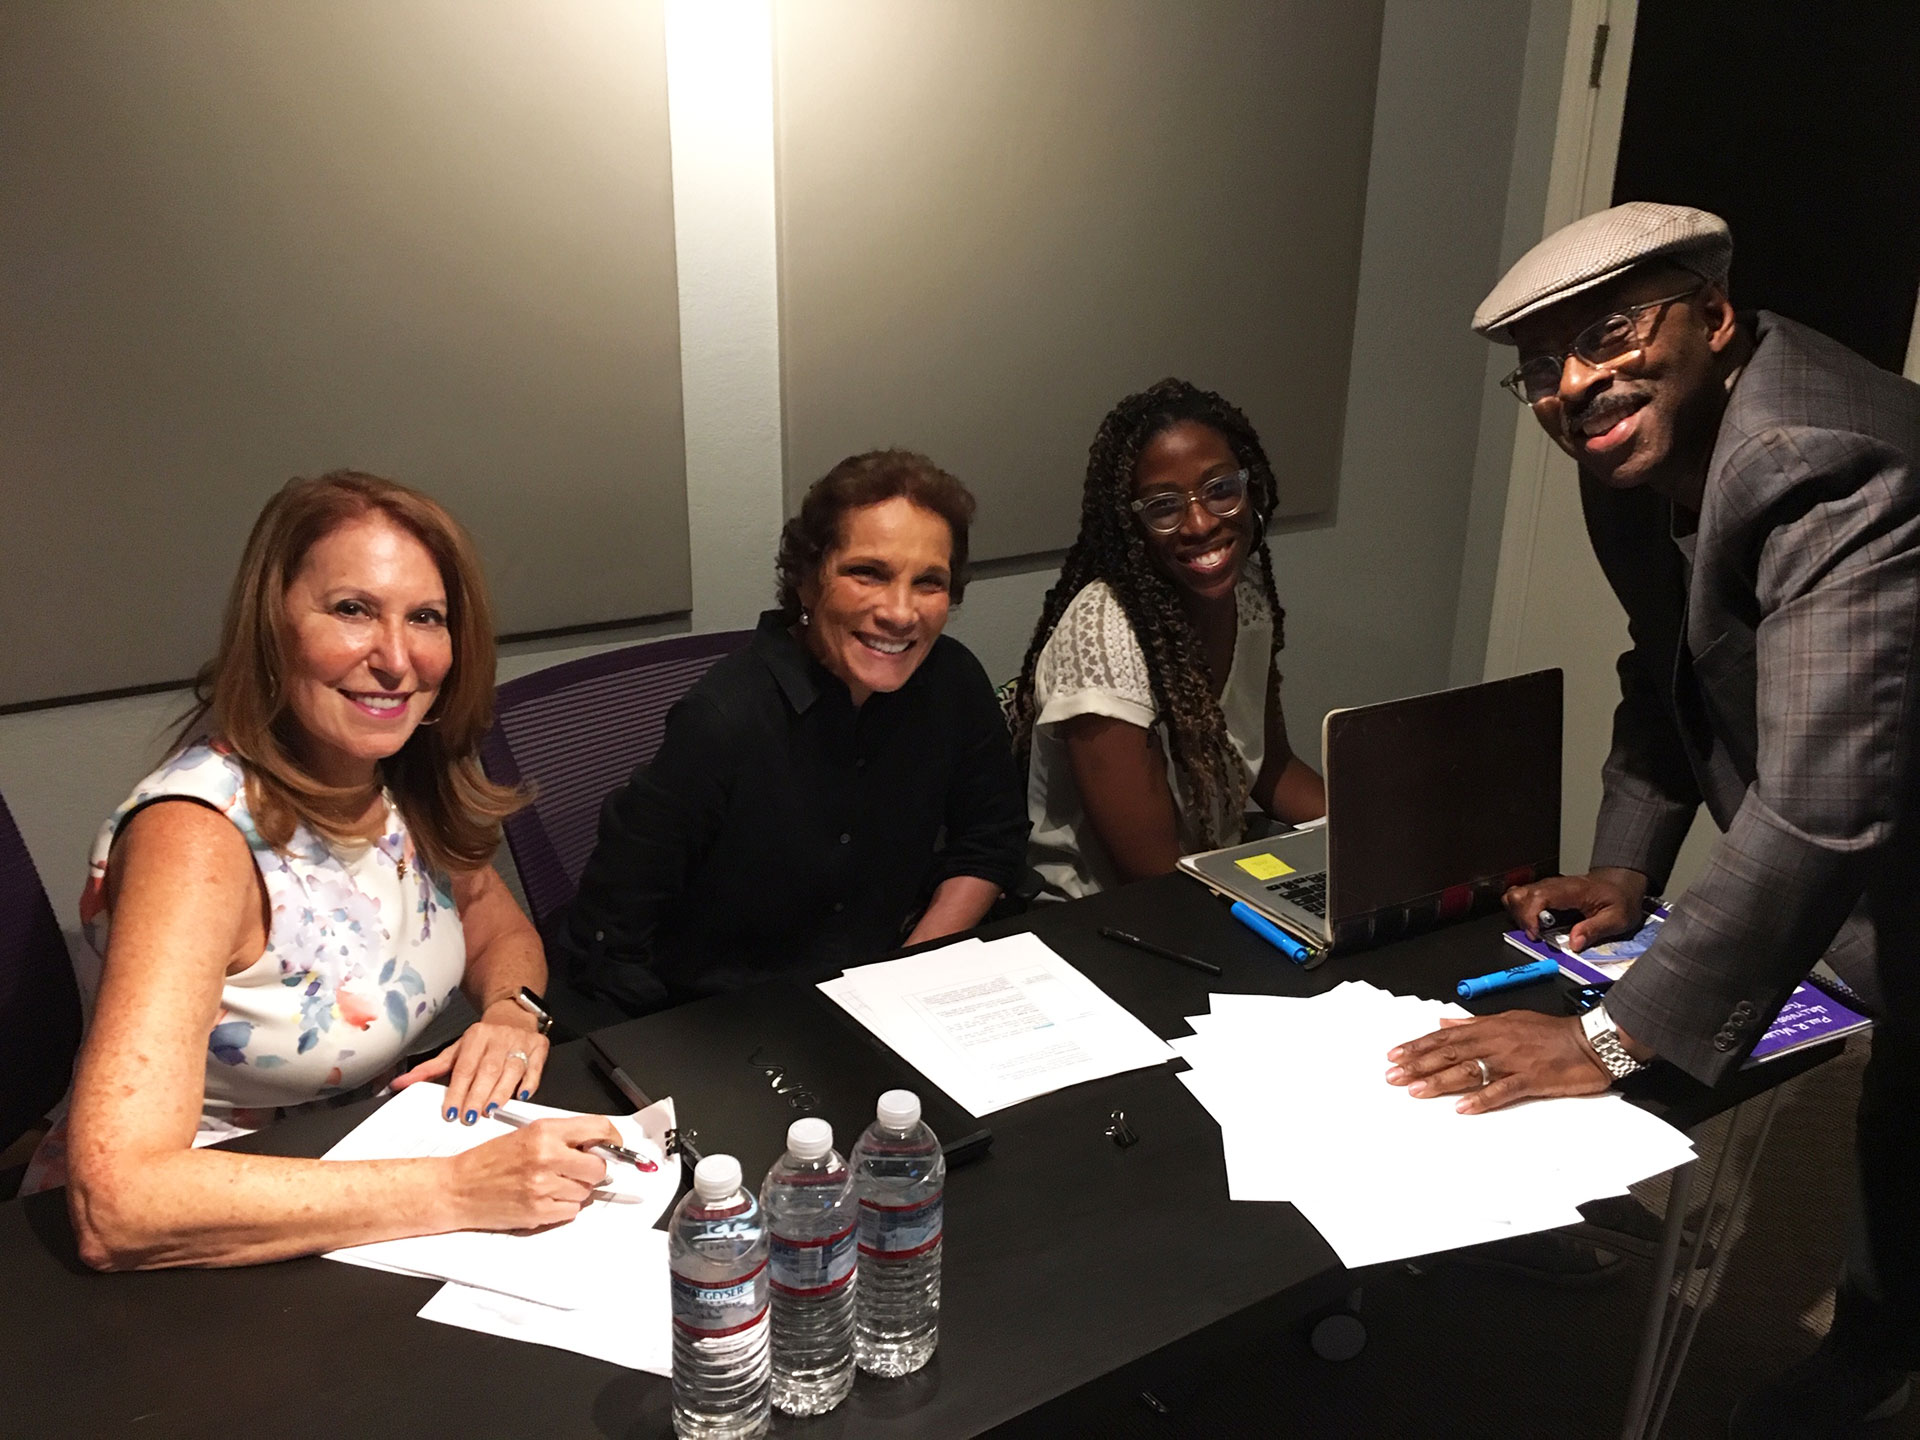 Royal Rodgers and Team During Voice Over Sessions for Hollywood's Architect